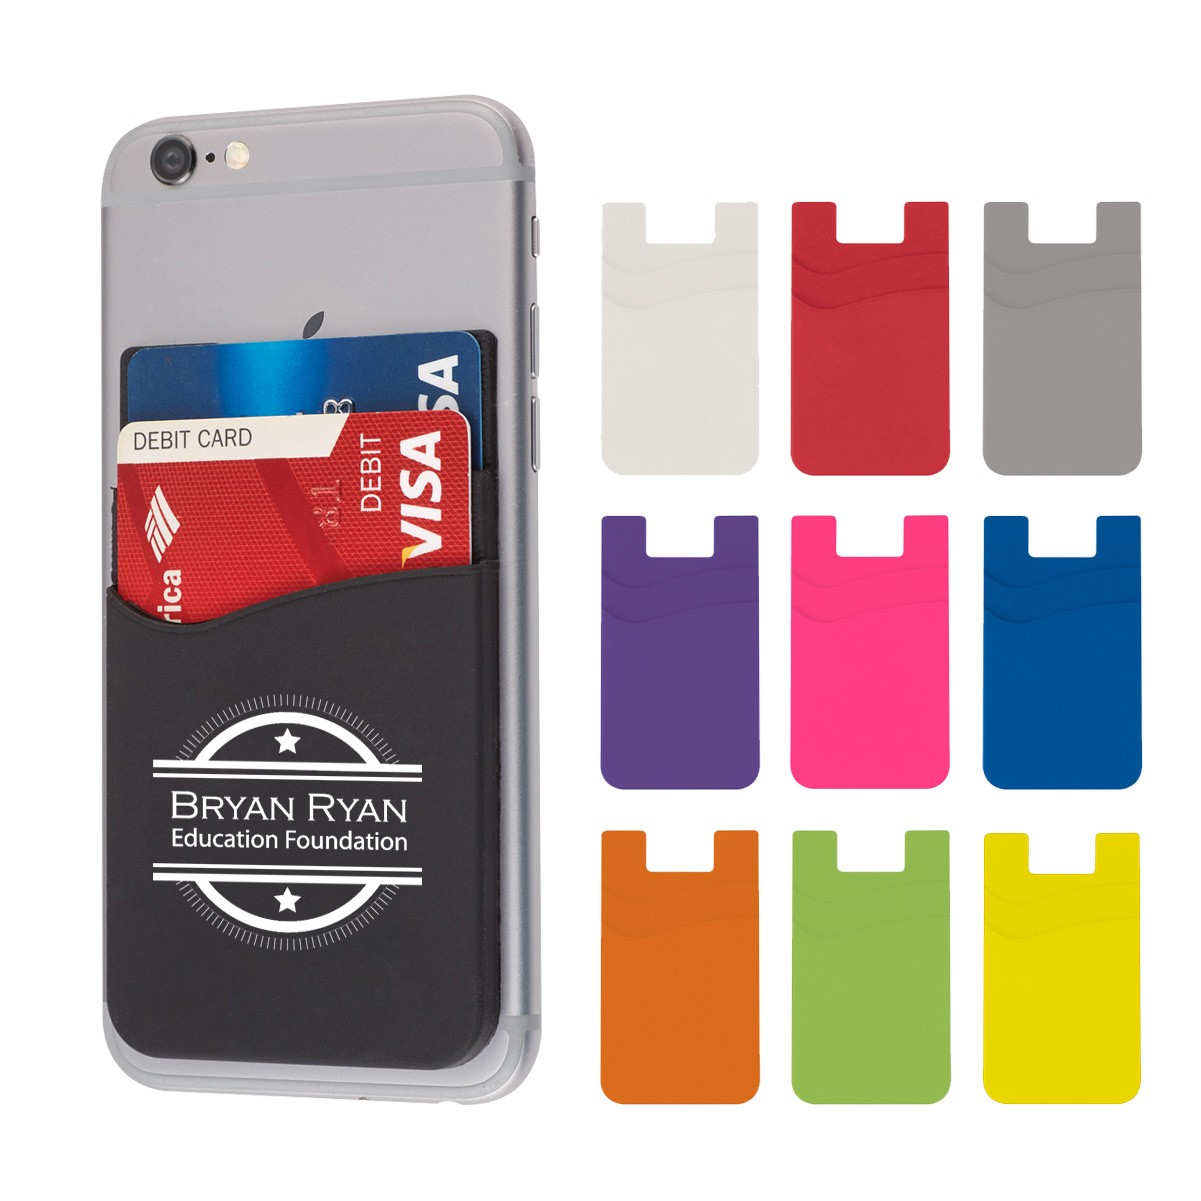 phone- wallet- phone wallet- promotional item- custom promos- local- VA- Undercover Printer